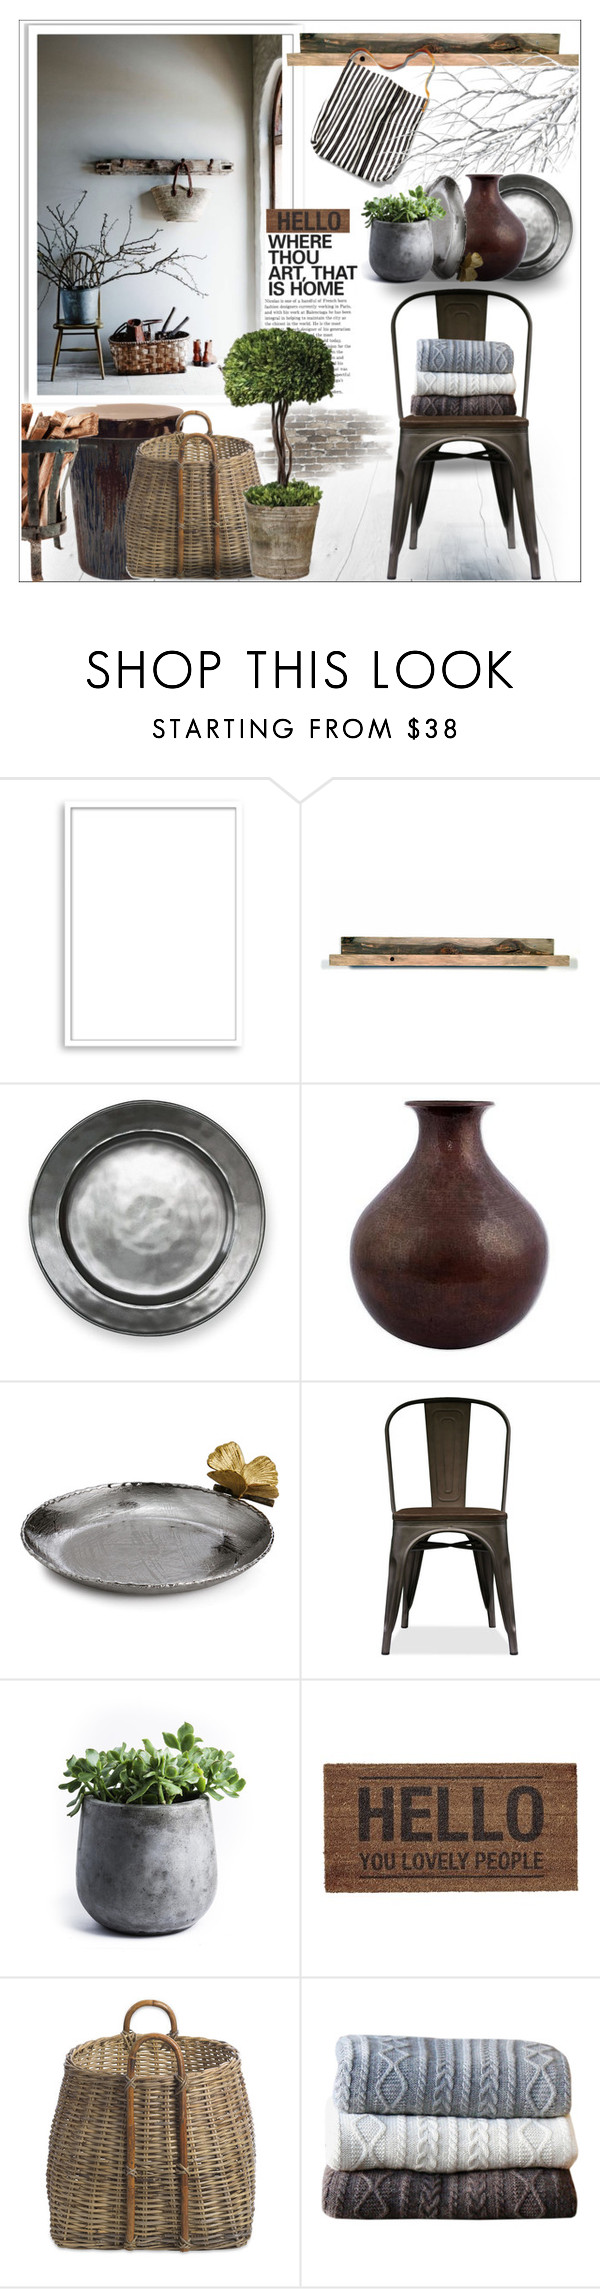 """""""Escape from the city ..."""" by dragananovcic ❤ liked on Polyvore featuring interior, interiors, interior design, home, home decor, interior decorating, Bomedo, WALL, Juliska and NOVICA"""